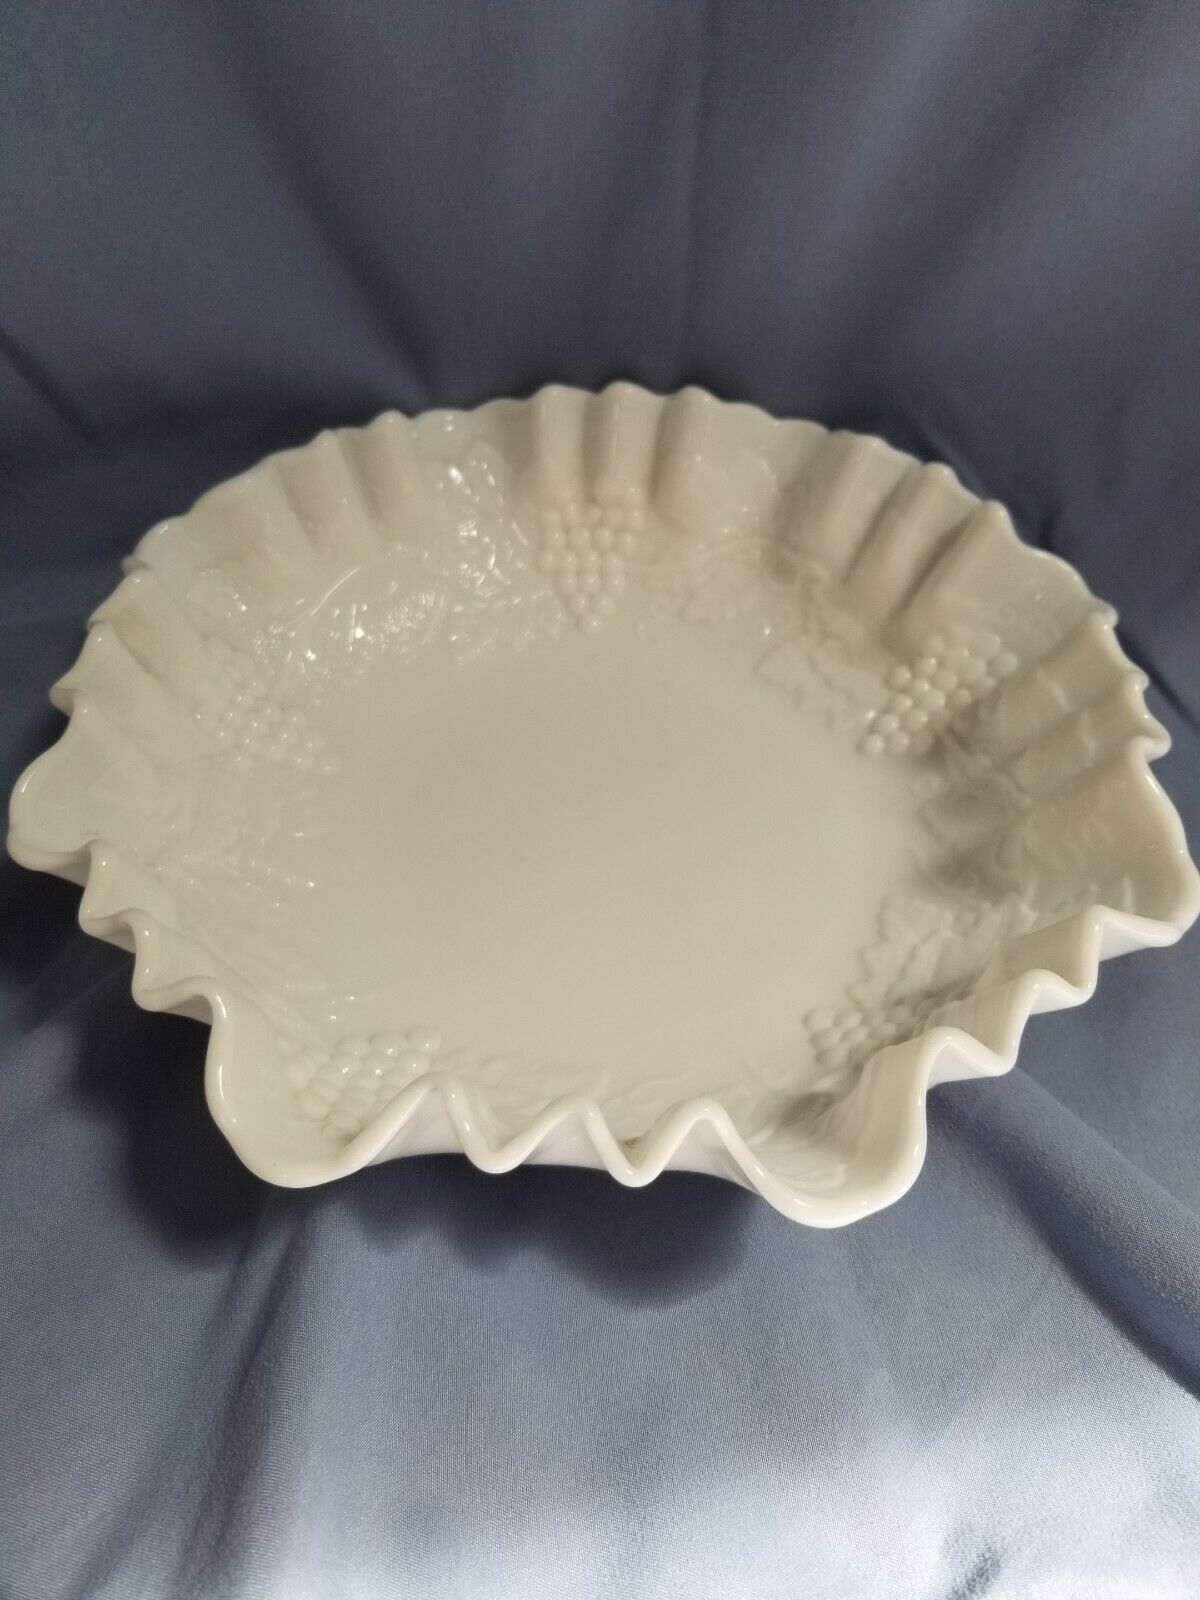 Primary image for Imperial Grape 8 1/2 inch Milk Glass Crimped Bowl - Imperial Glass Co.